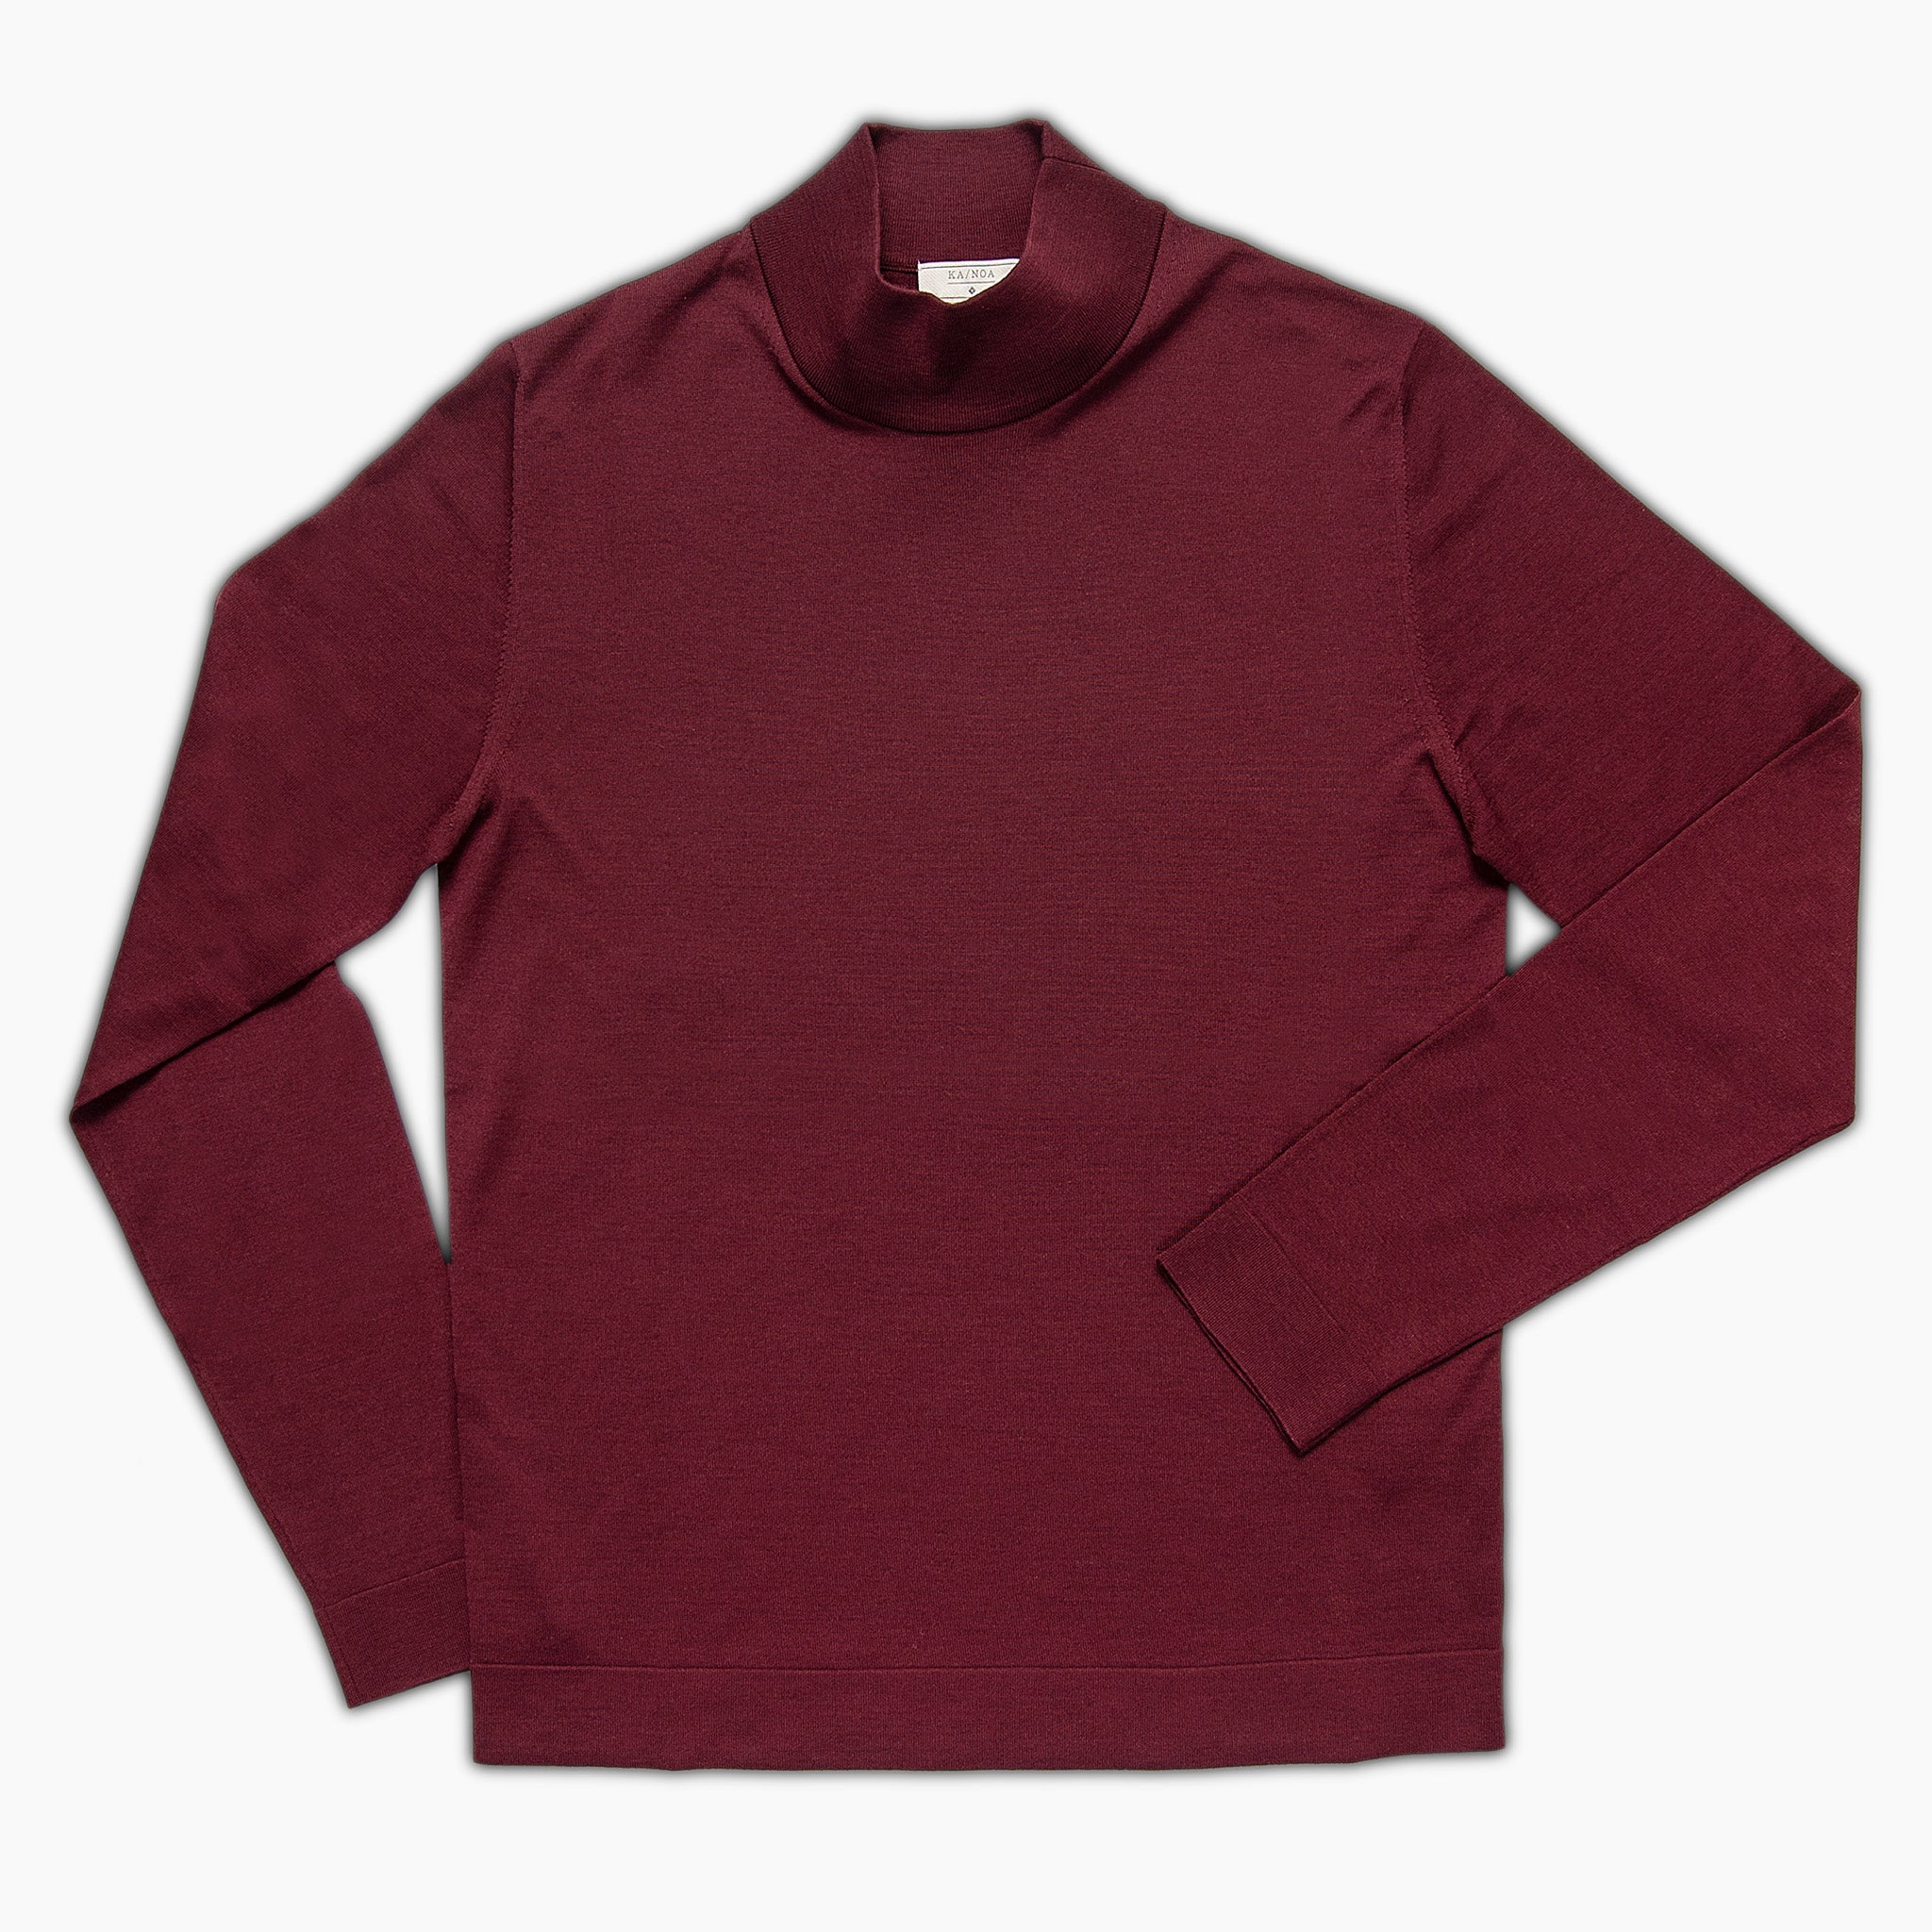 Gilles A cycling collar jumper Superfine Wool Merino (Burgundy)